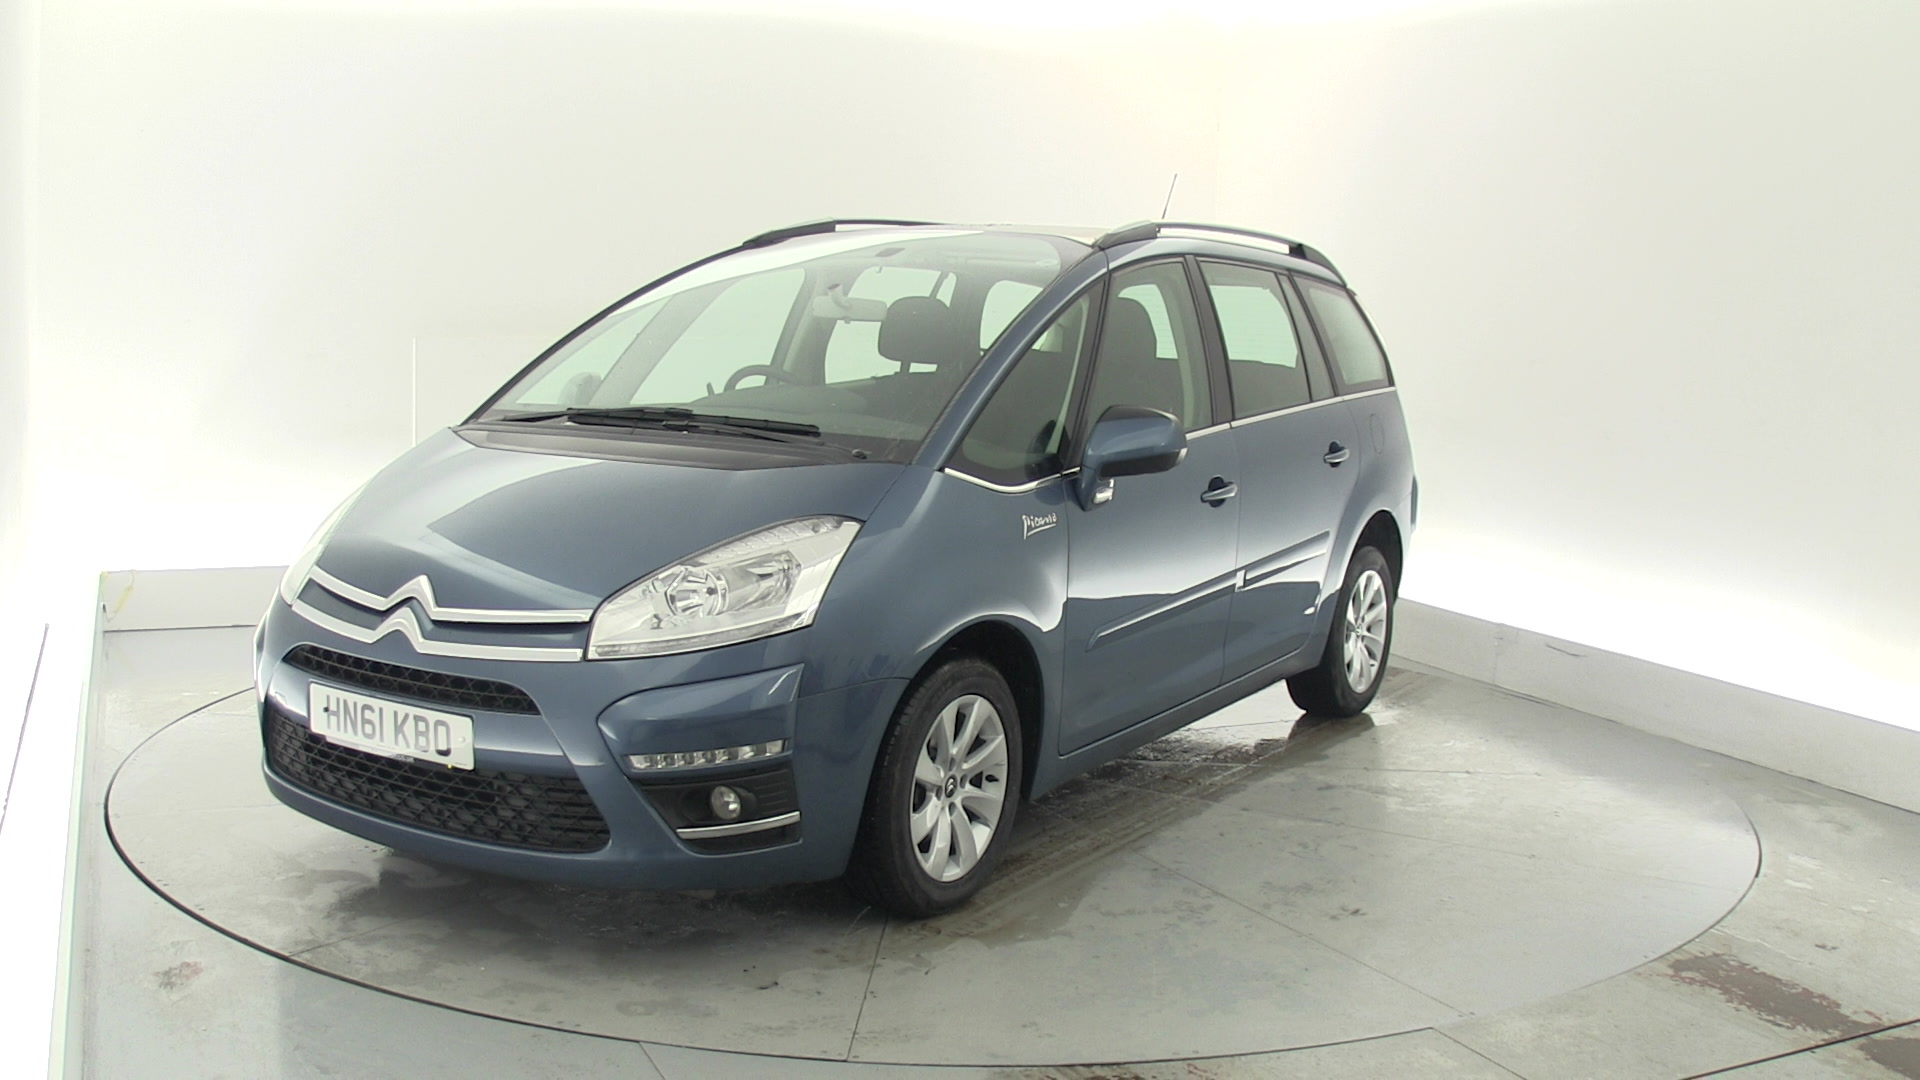 used citroen c4 grand picasso 1 6 e hdi airdream vtr 5dr egs6 blue hn61kbo cardiff. Black Bedroom Furniture Sets. Home Design Ideas